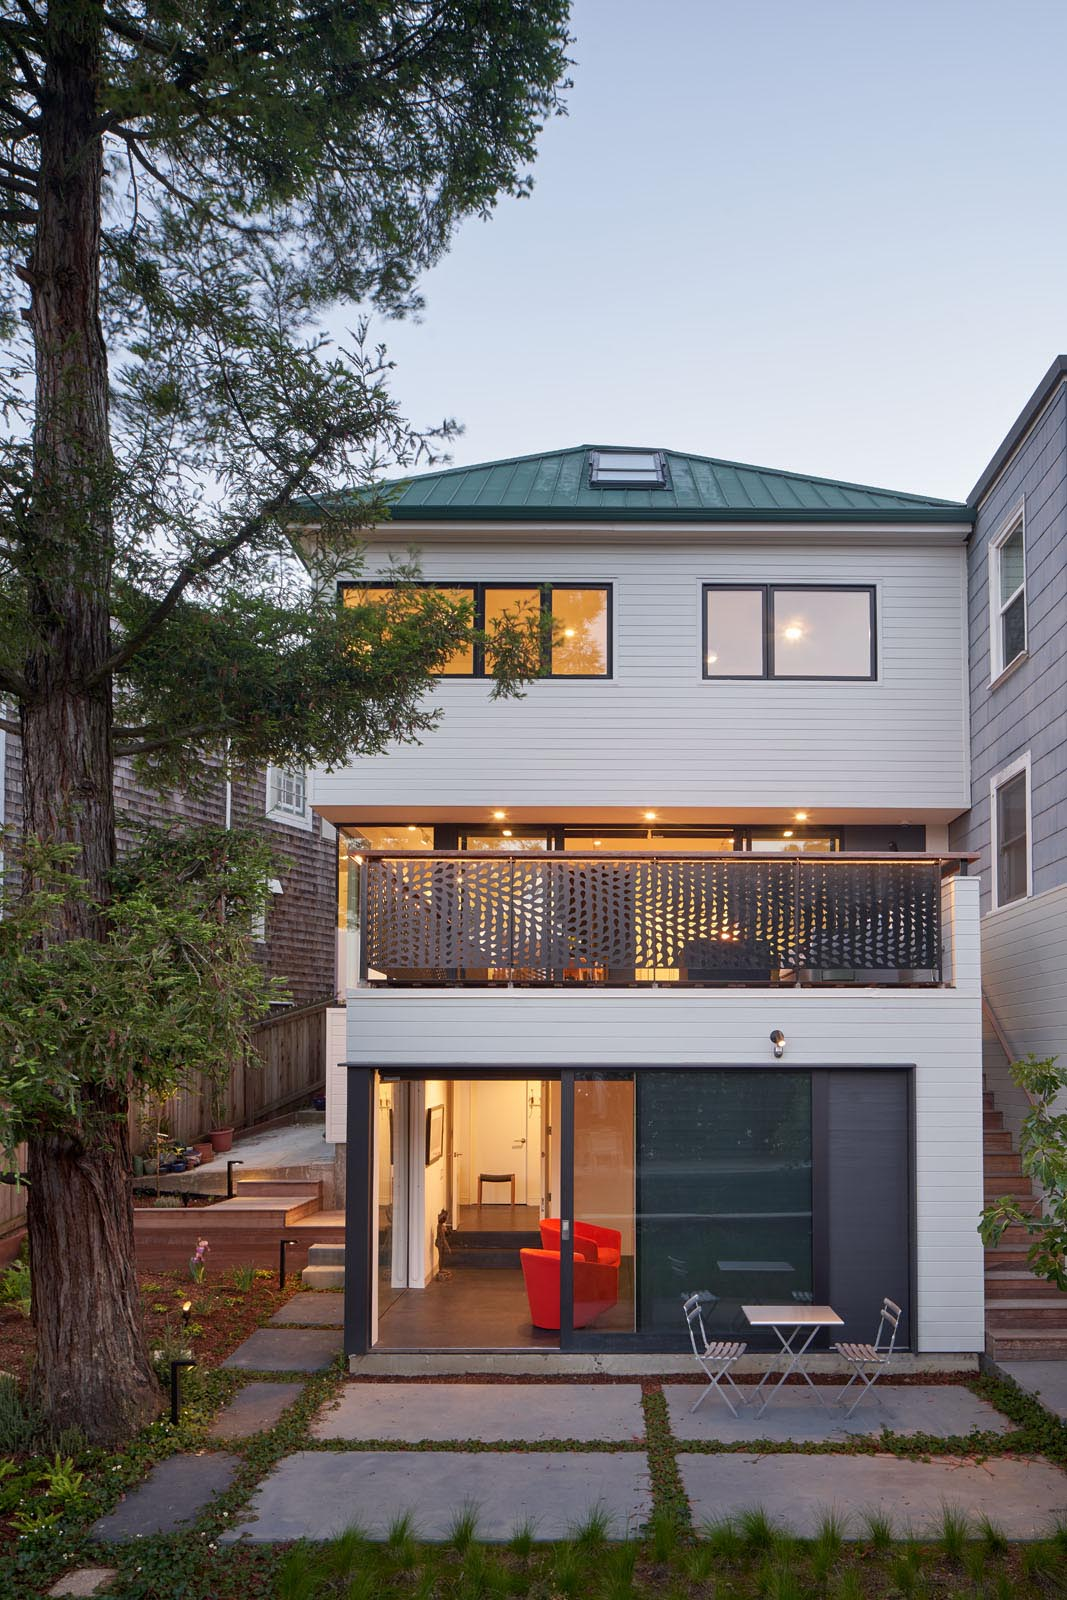 A remodeled home with a new rear deck.